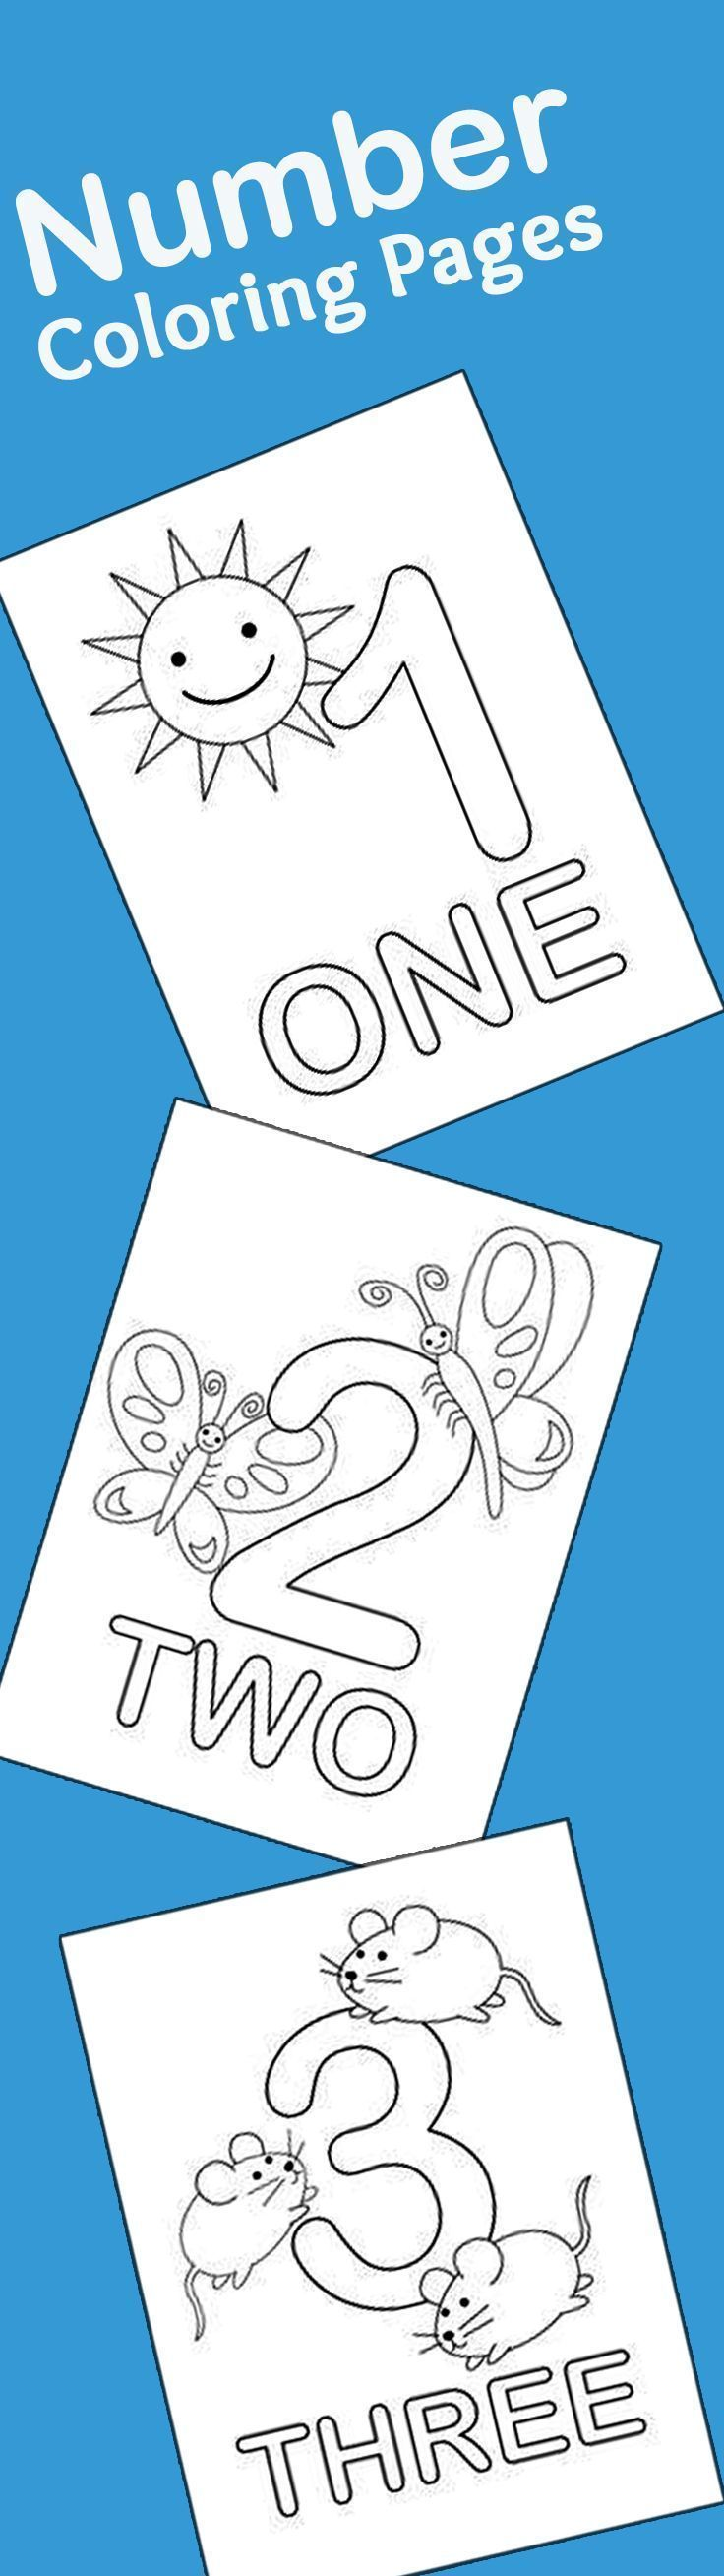 Mobile shimmer and shine coloring games coloring pages ausmalbilder - 21 Easy To Learn Number Coloring Pages For Kids This Is A List Of The